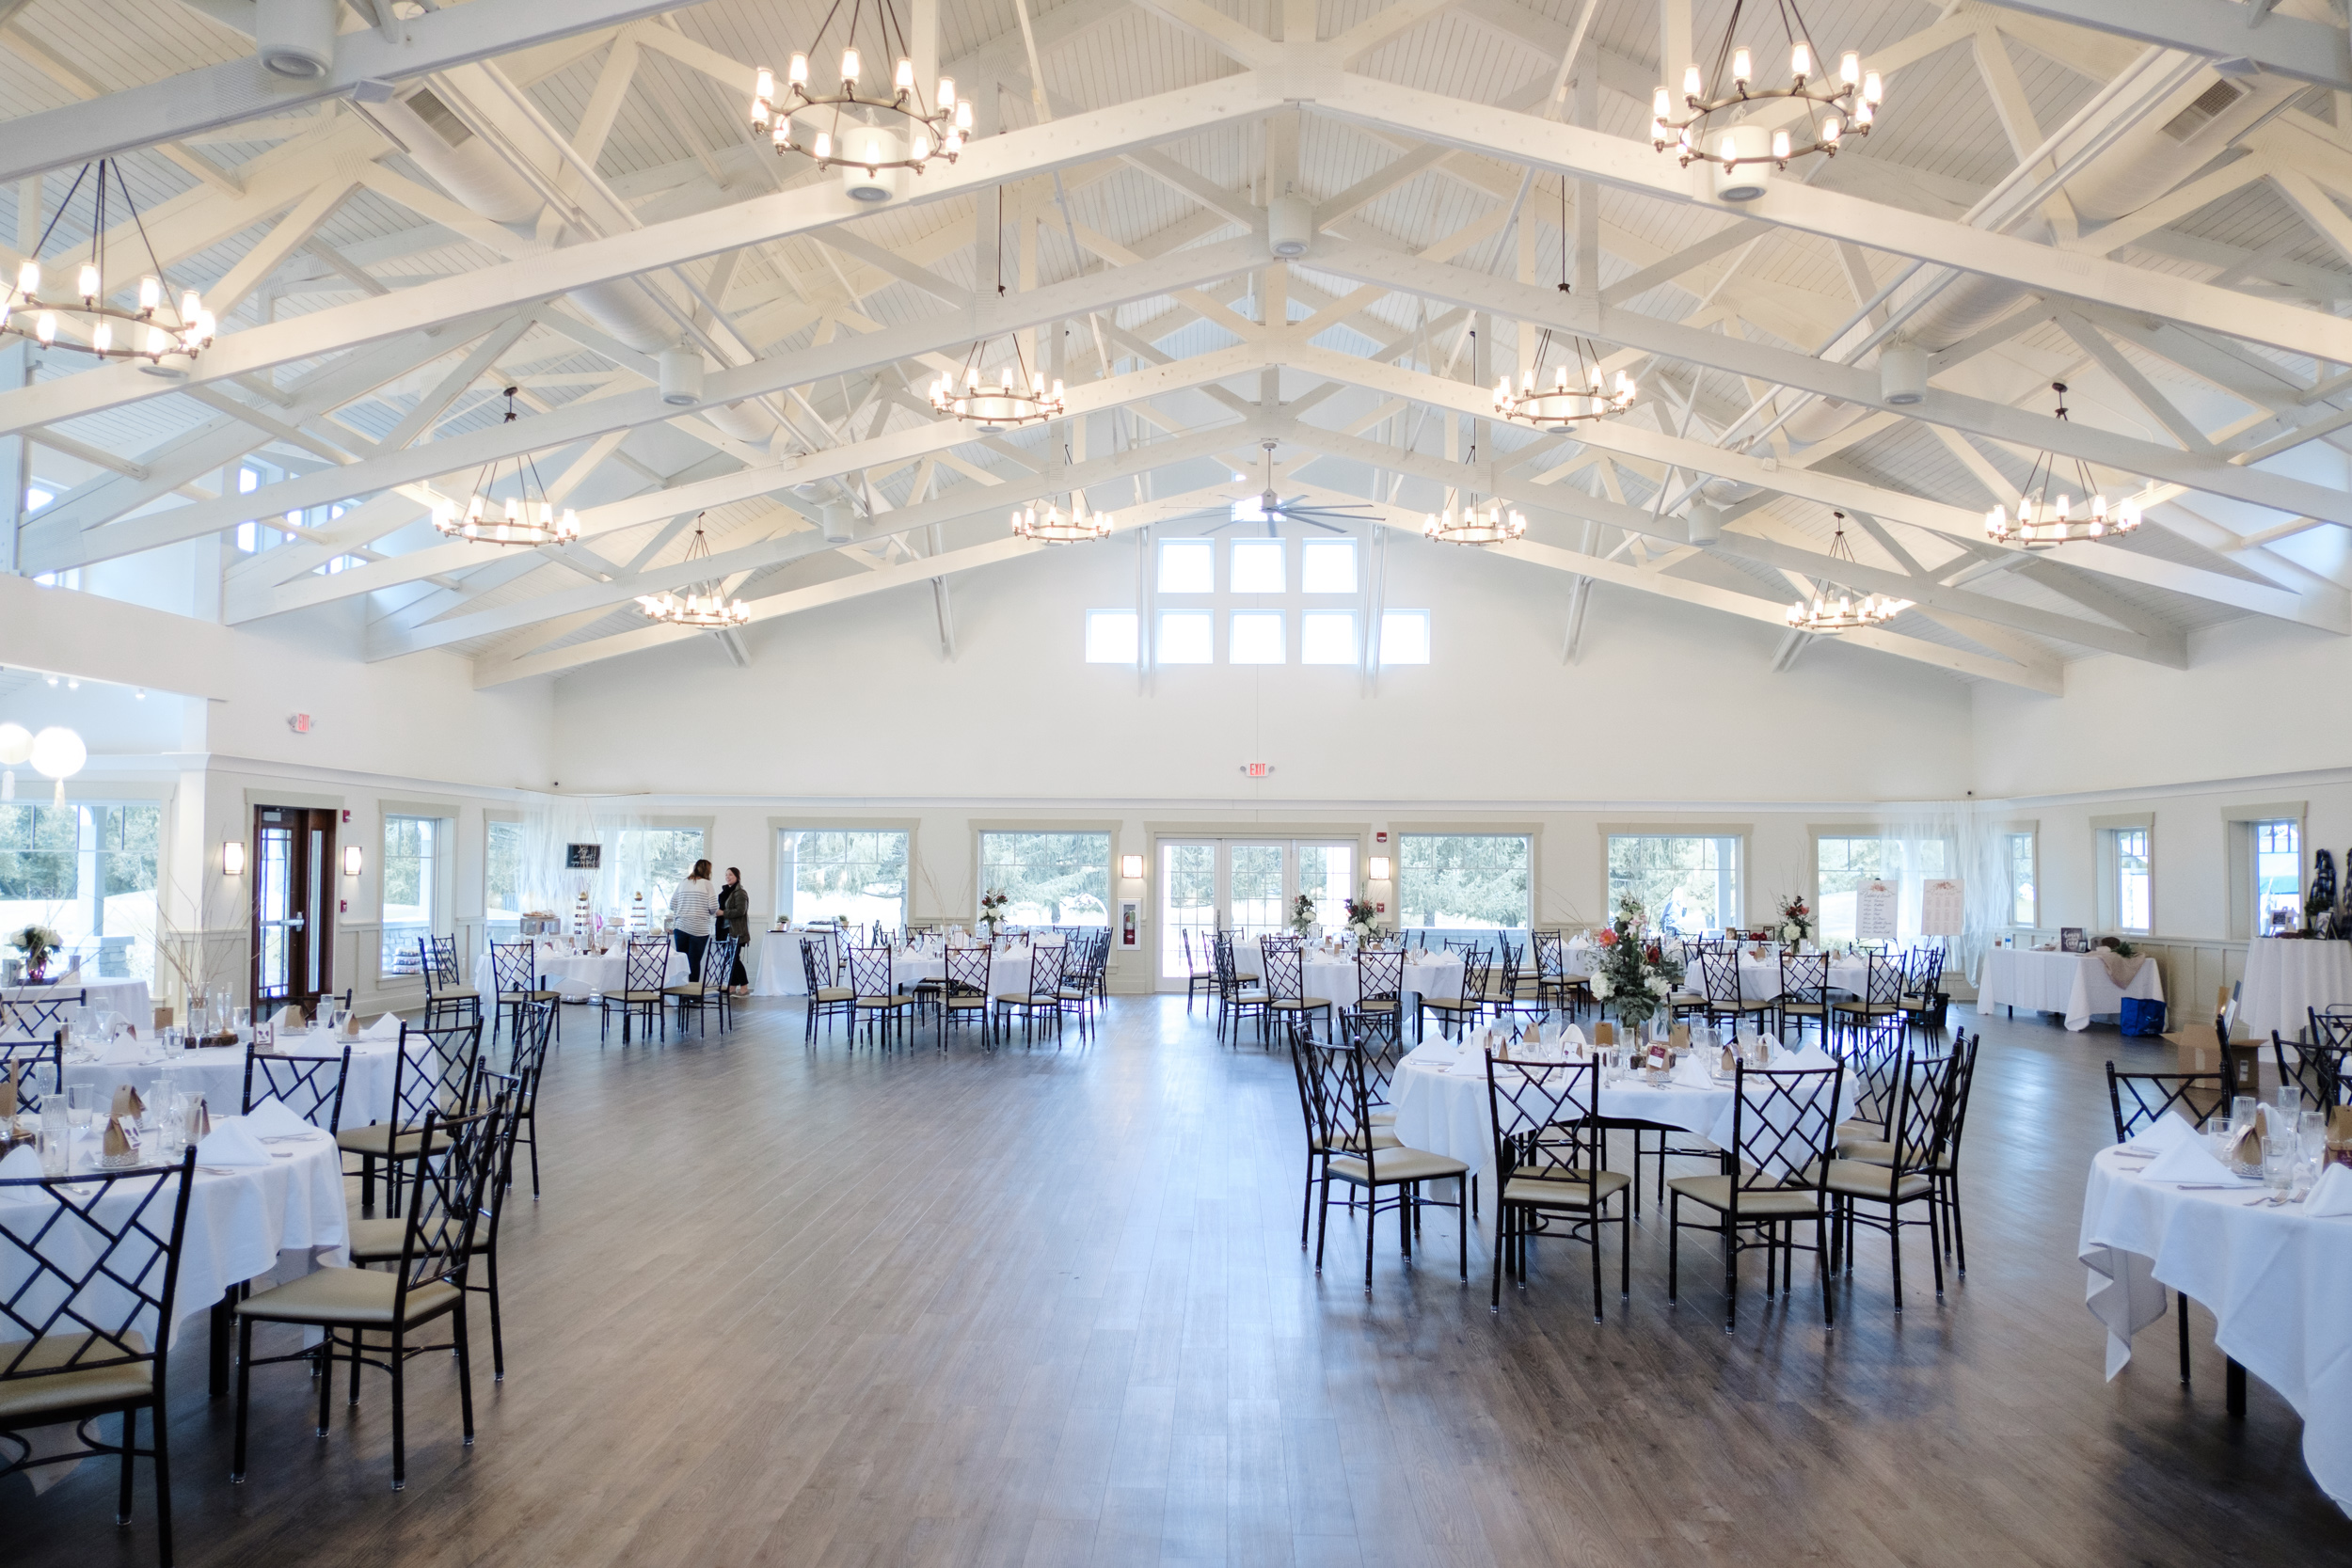 View of wedding venue setup at Rockford Bank and Trust Pavilion.